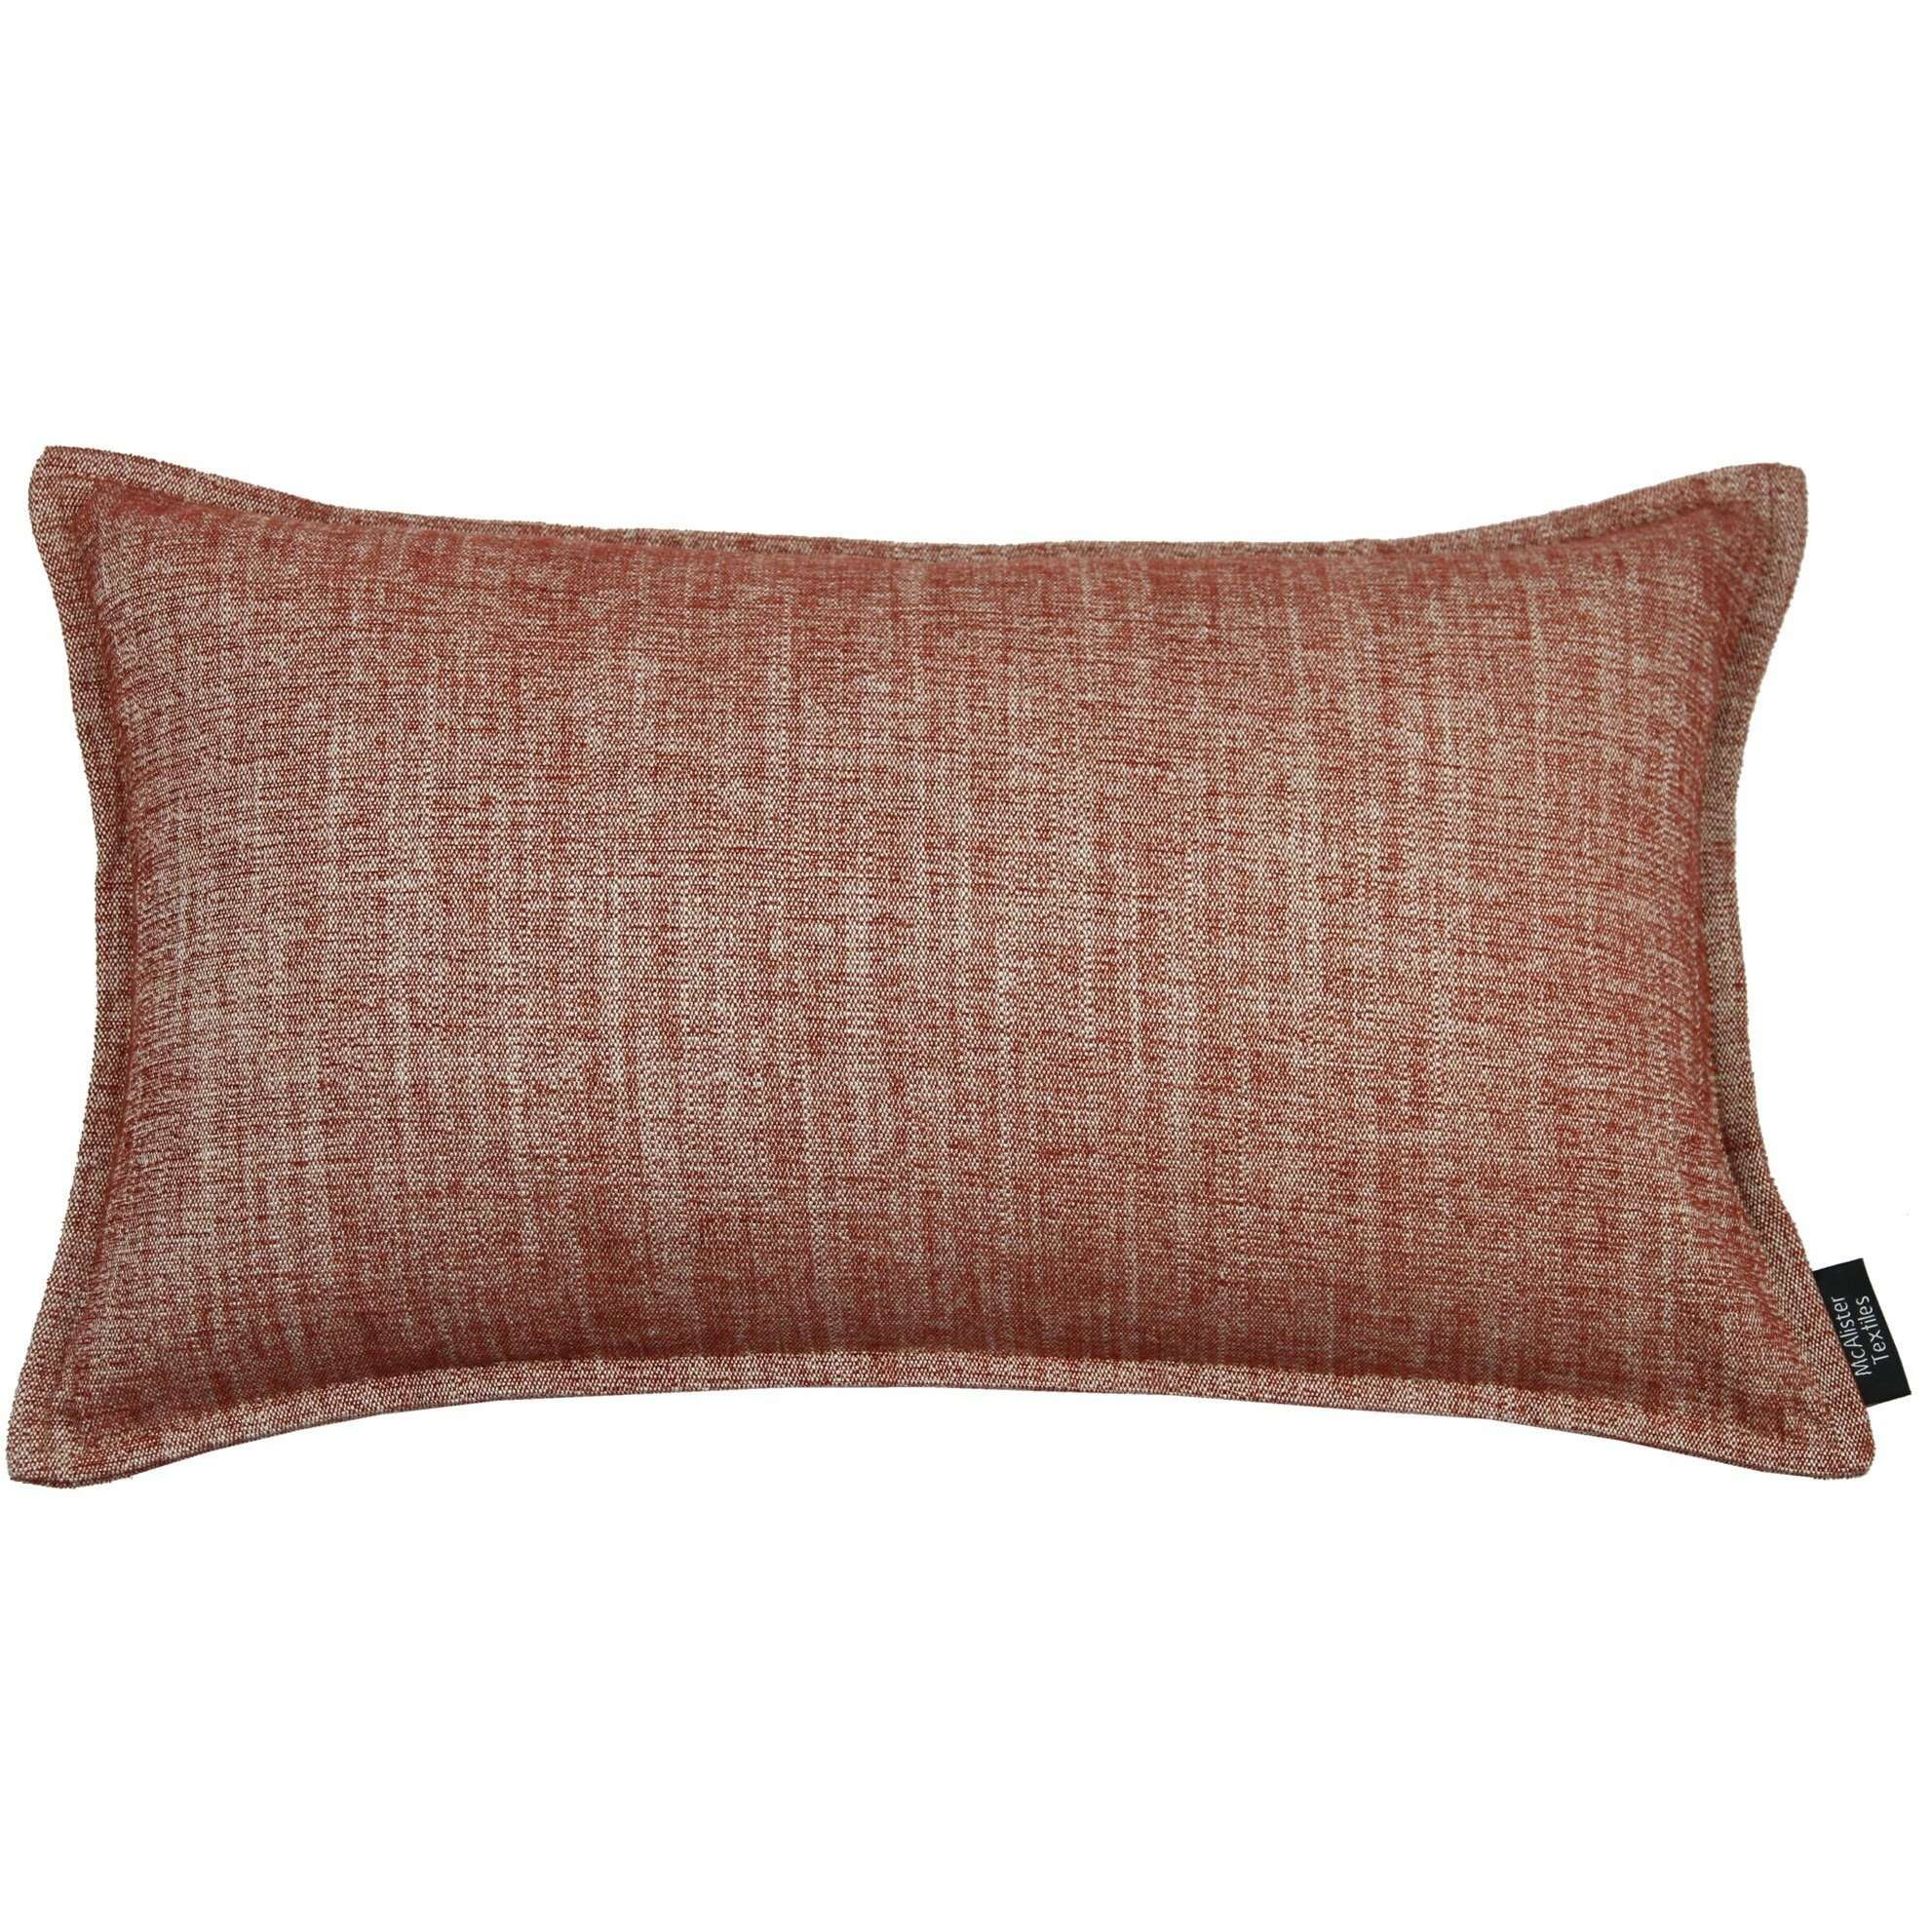 McAlister Textiles Rhumba Burnt Orange Pillow Pillow Cover Only 50cm x 30cm